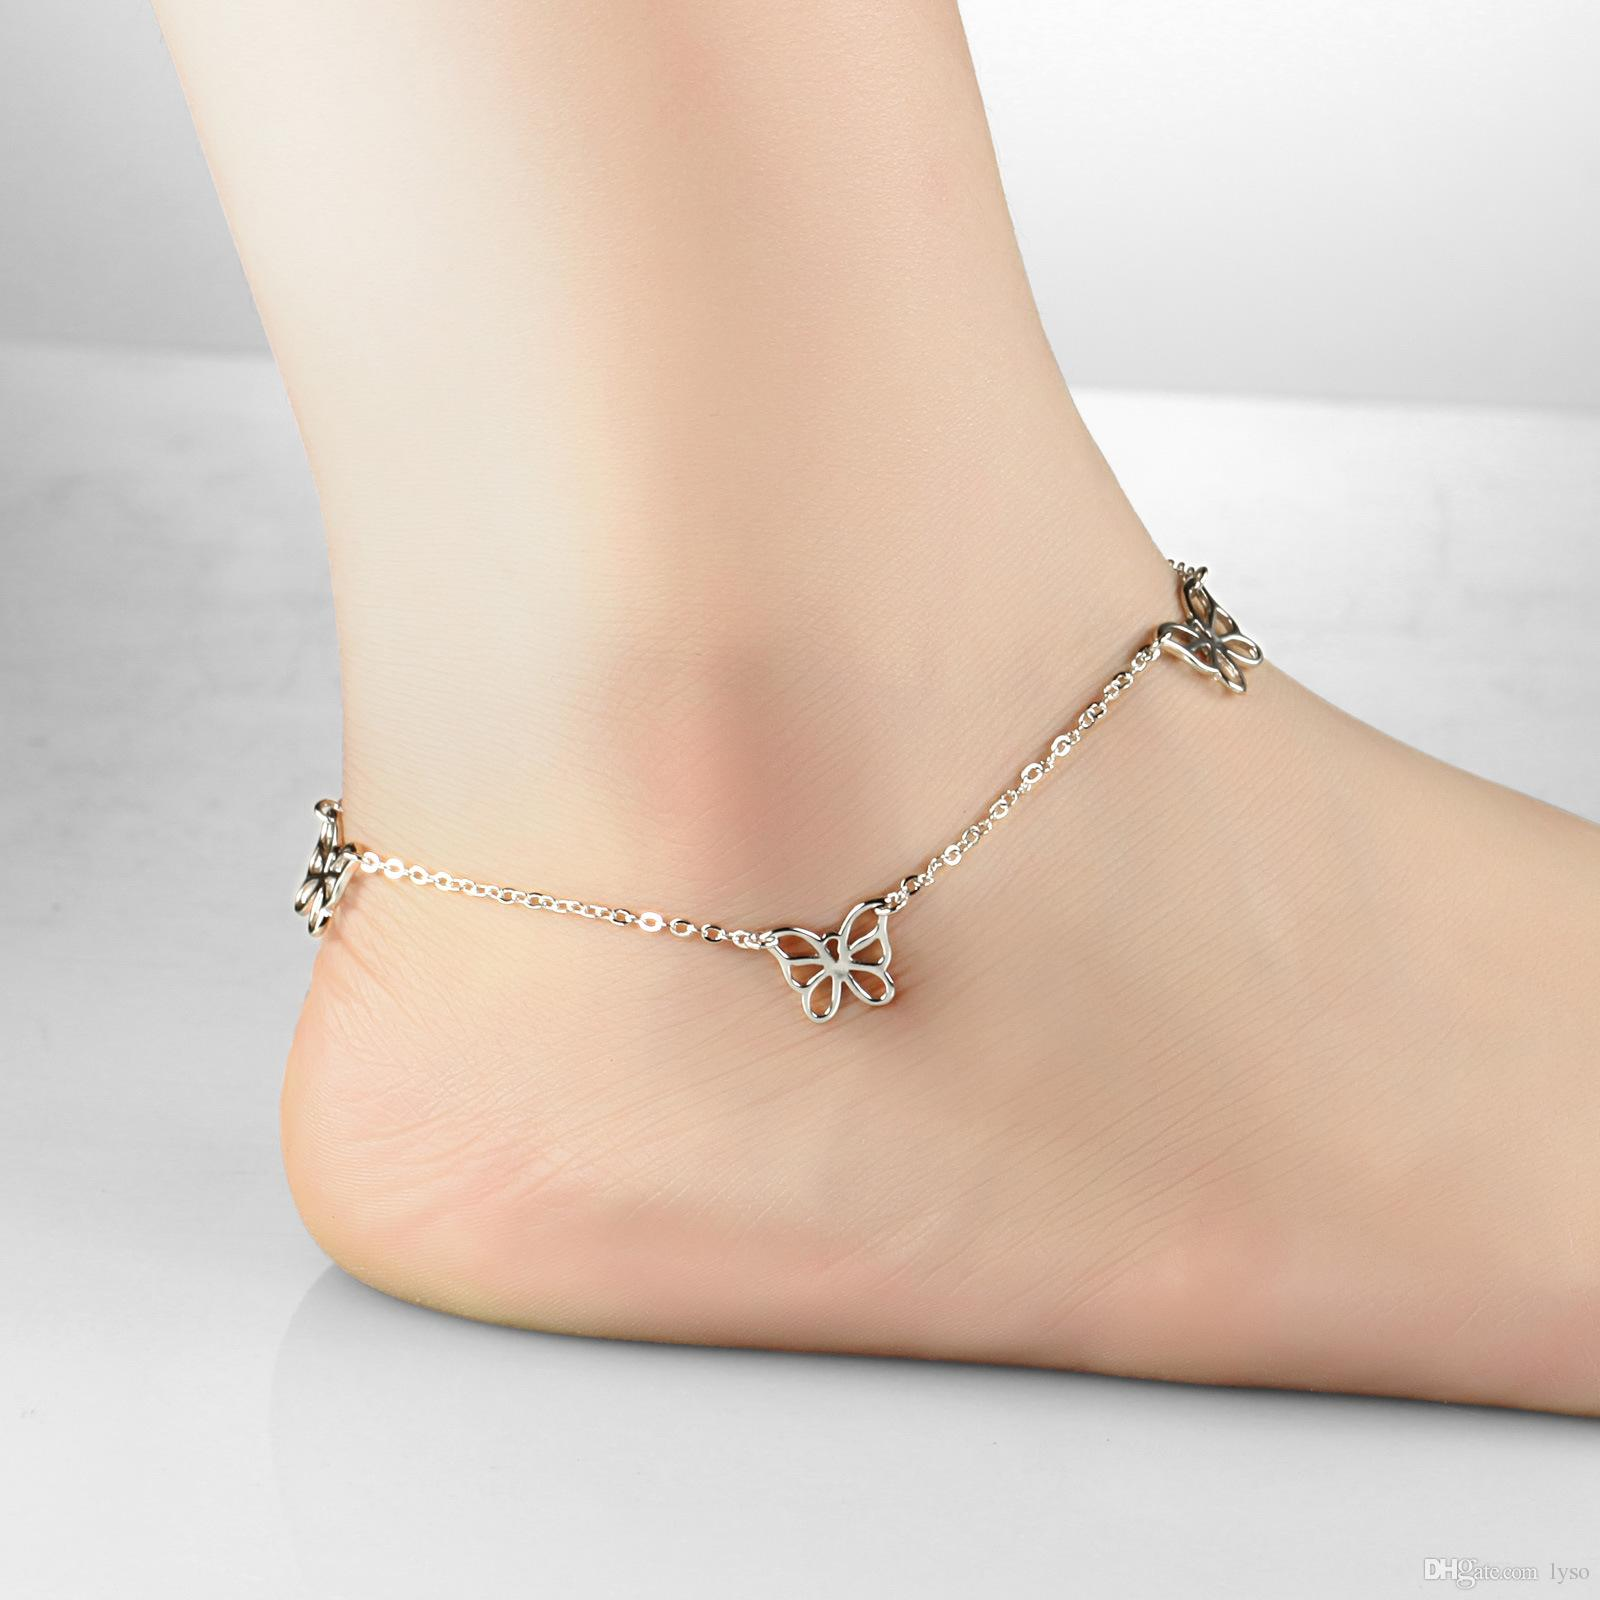 in rhinestone for item dance ankles big crystal exaggerated statement jewelry shiny anklet from anklets women gem barefoot vintage ankle foot yoga